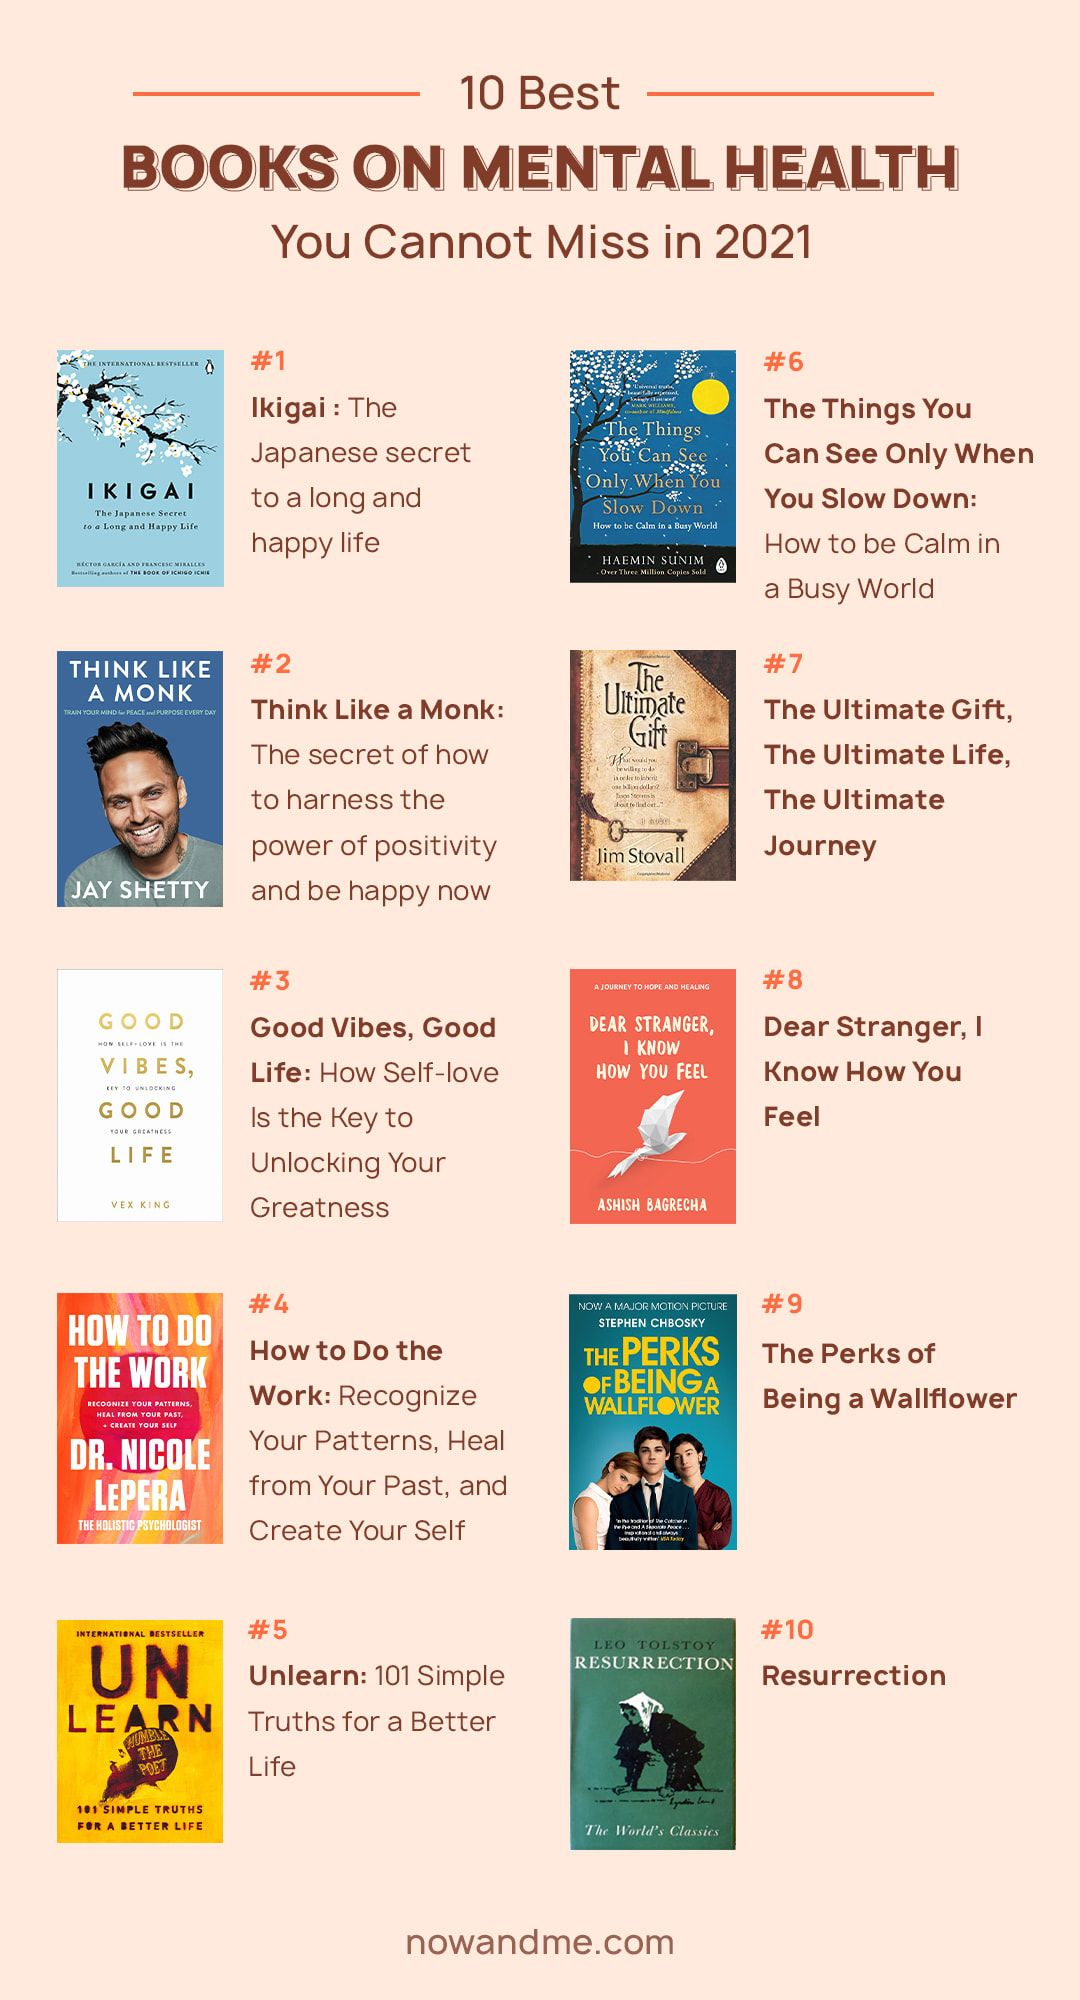 image of ten best books on mental health in 2021